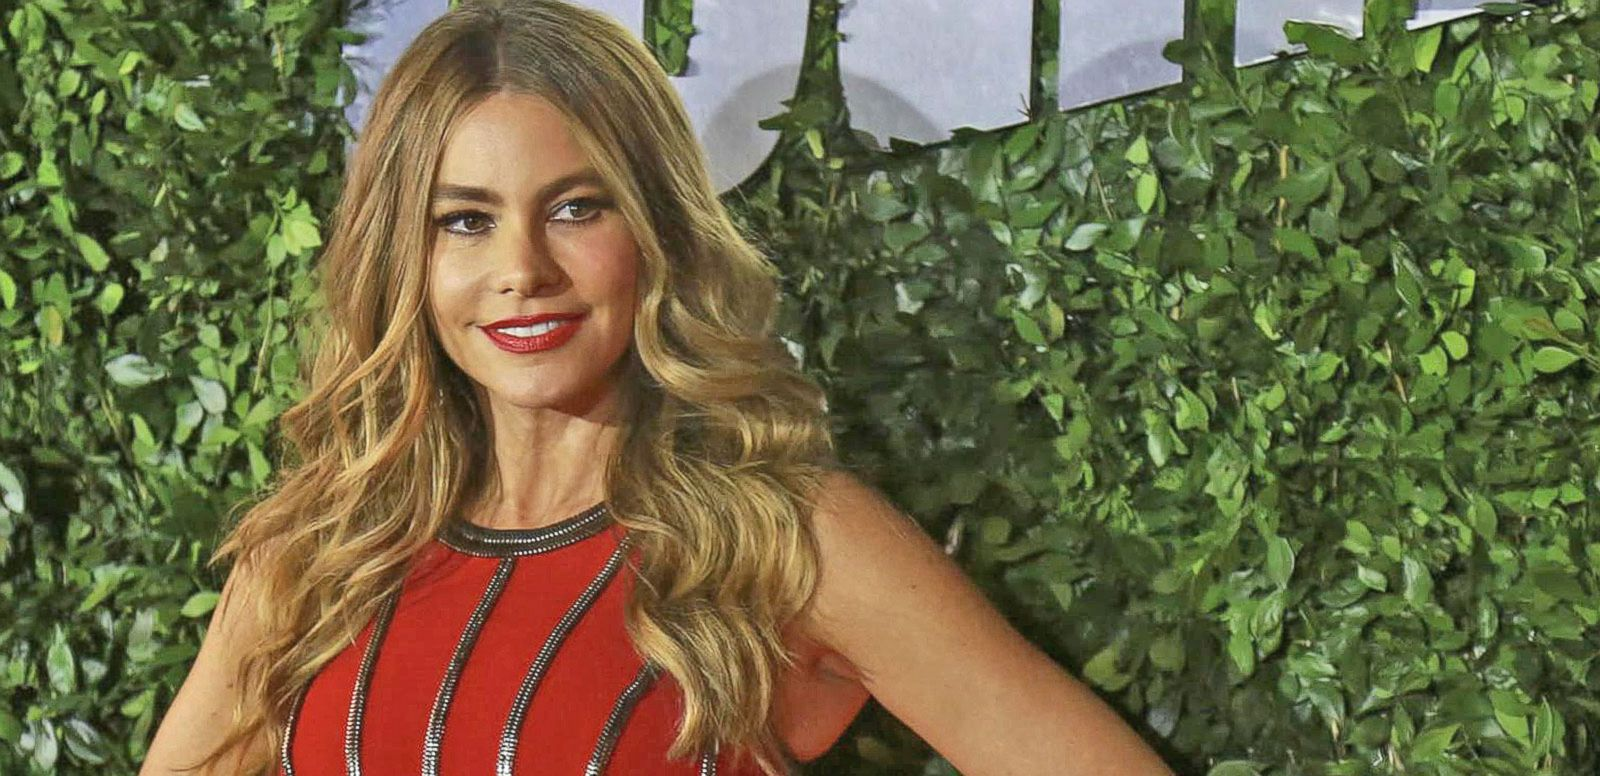 VIDEO: Sophia Vergara Files $15 Million Lawsuit Against Beauty Brand